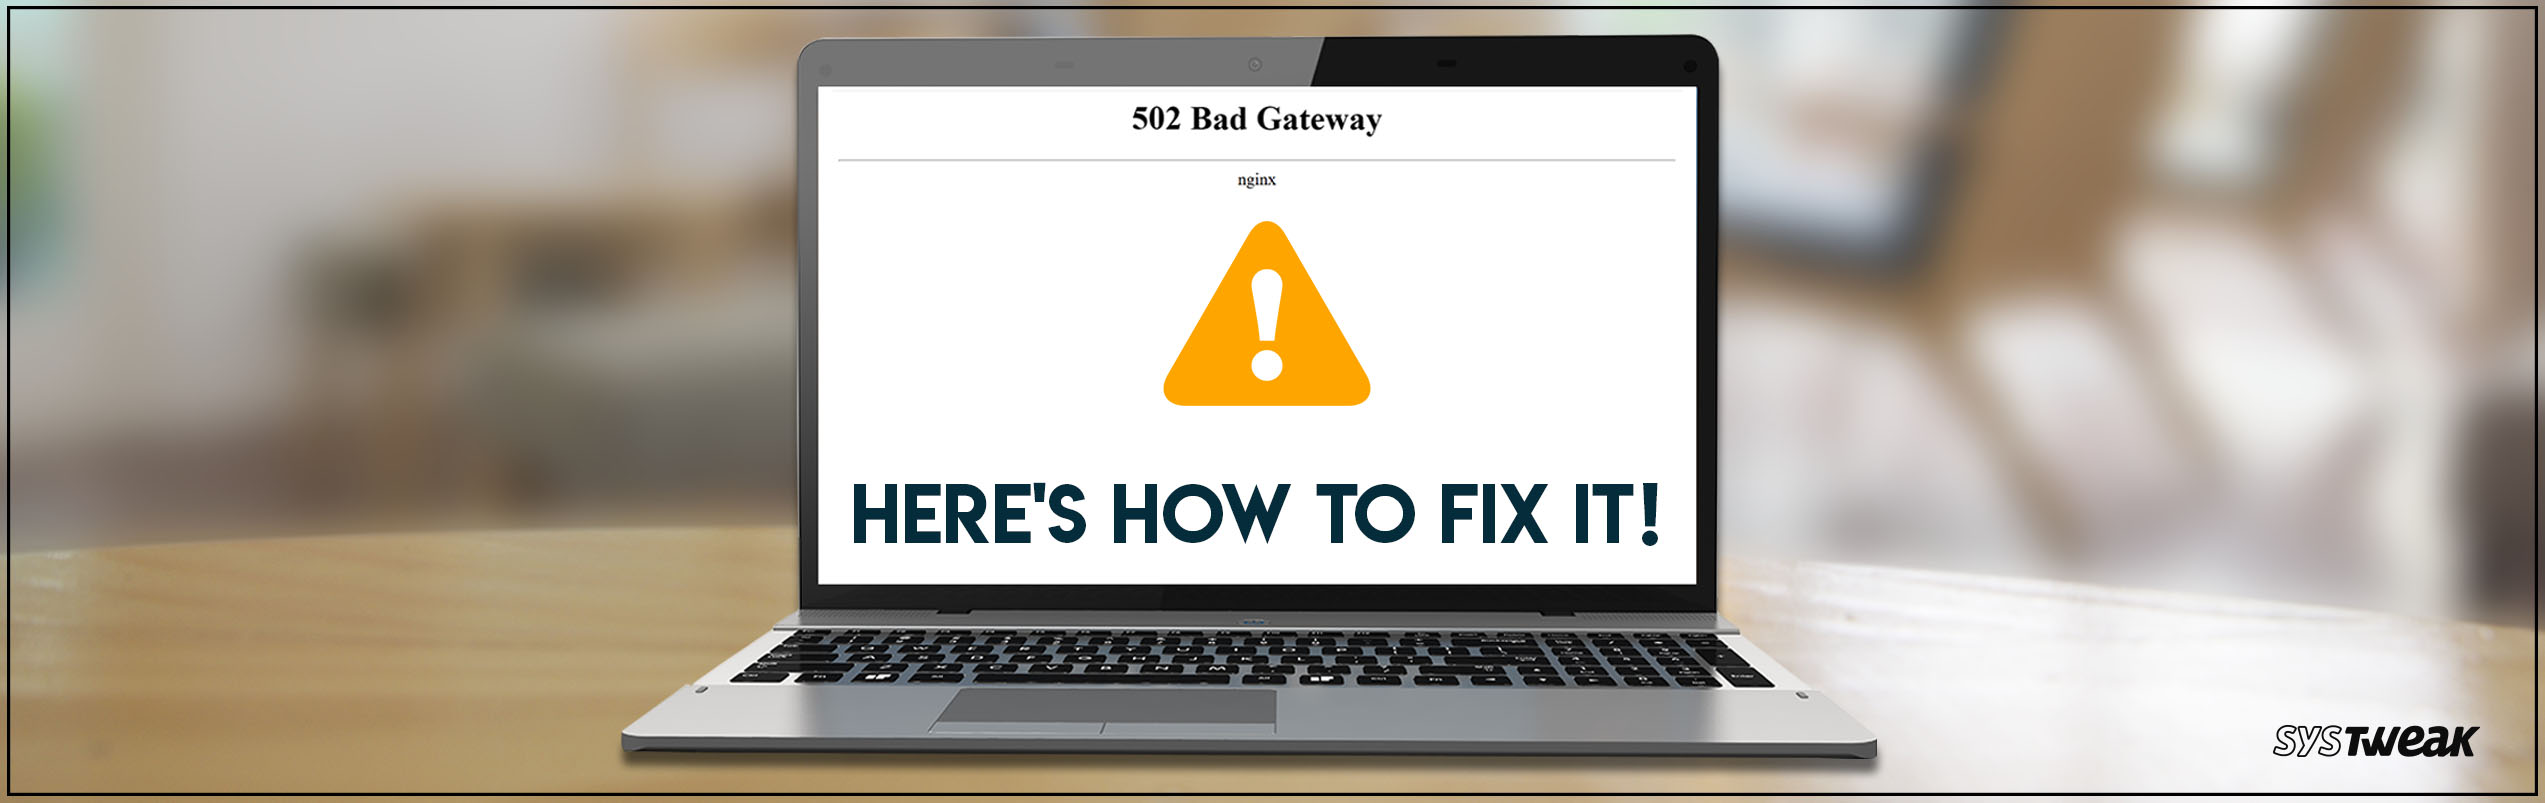 How to Solve Error 502 Bad Gateway?